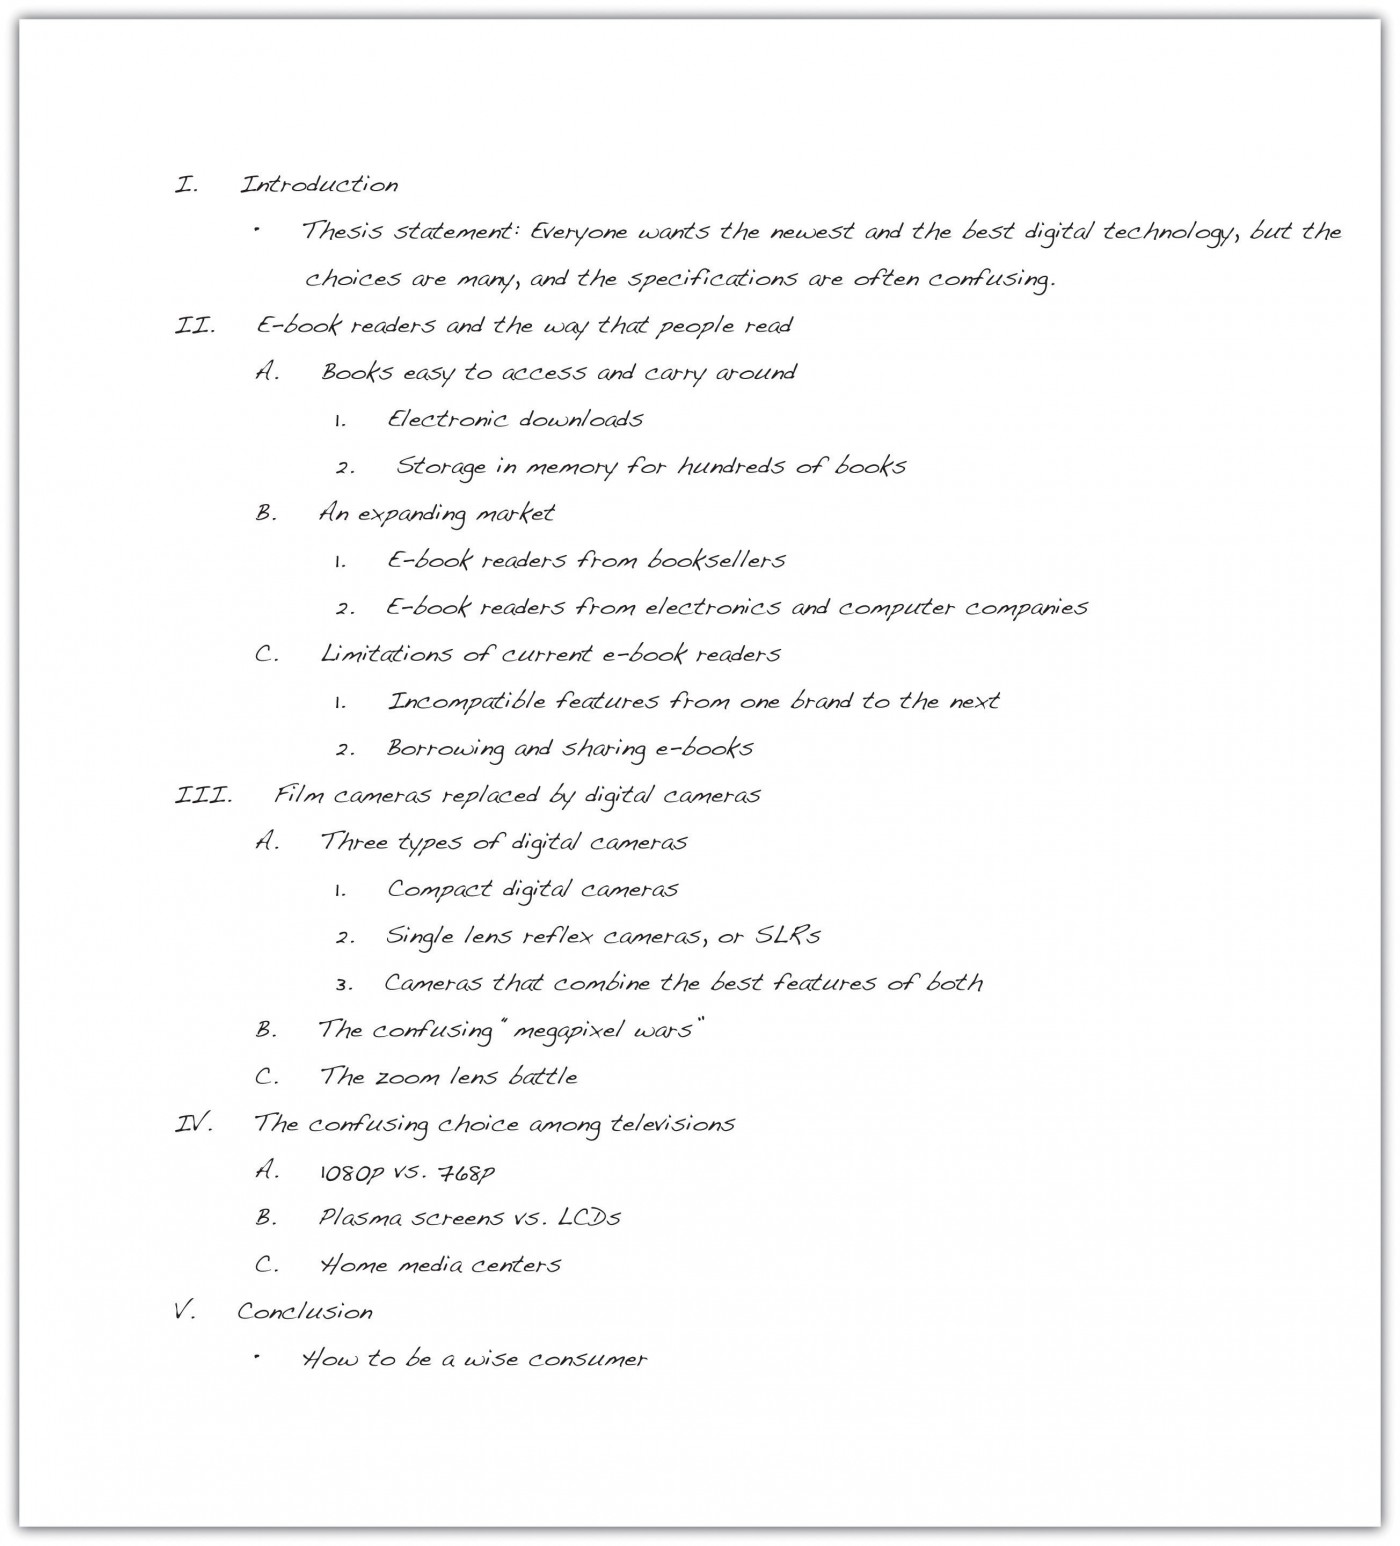 018 Research Paper Outlines Amazing Outline Mla Pdf Apa 1400